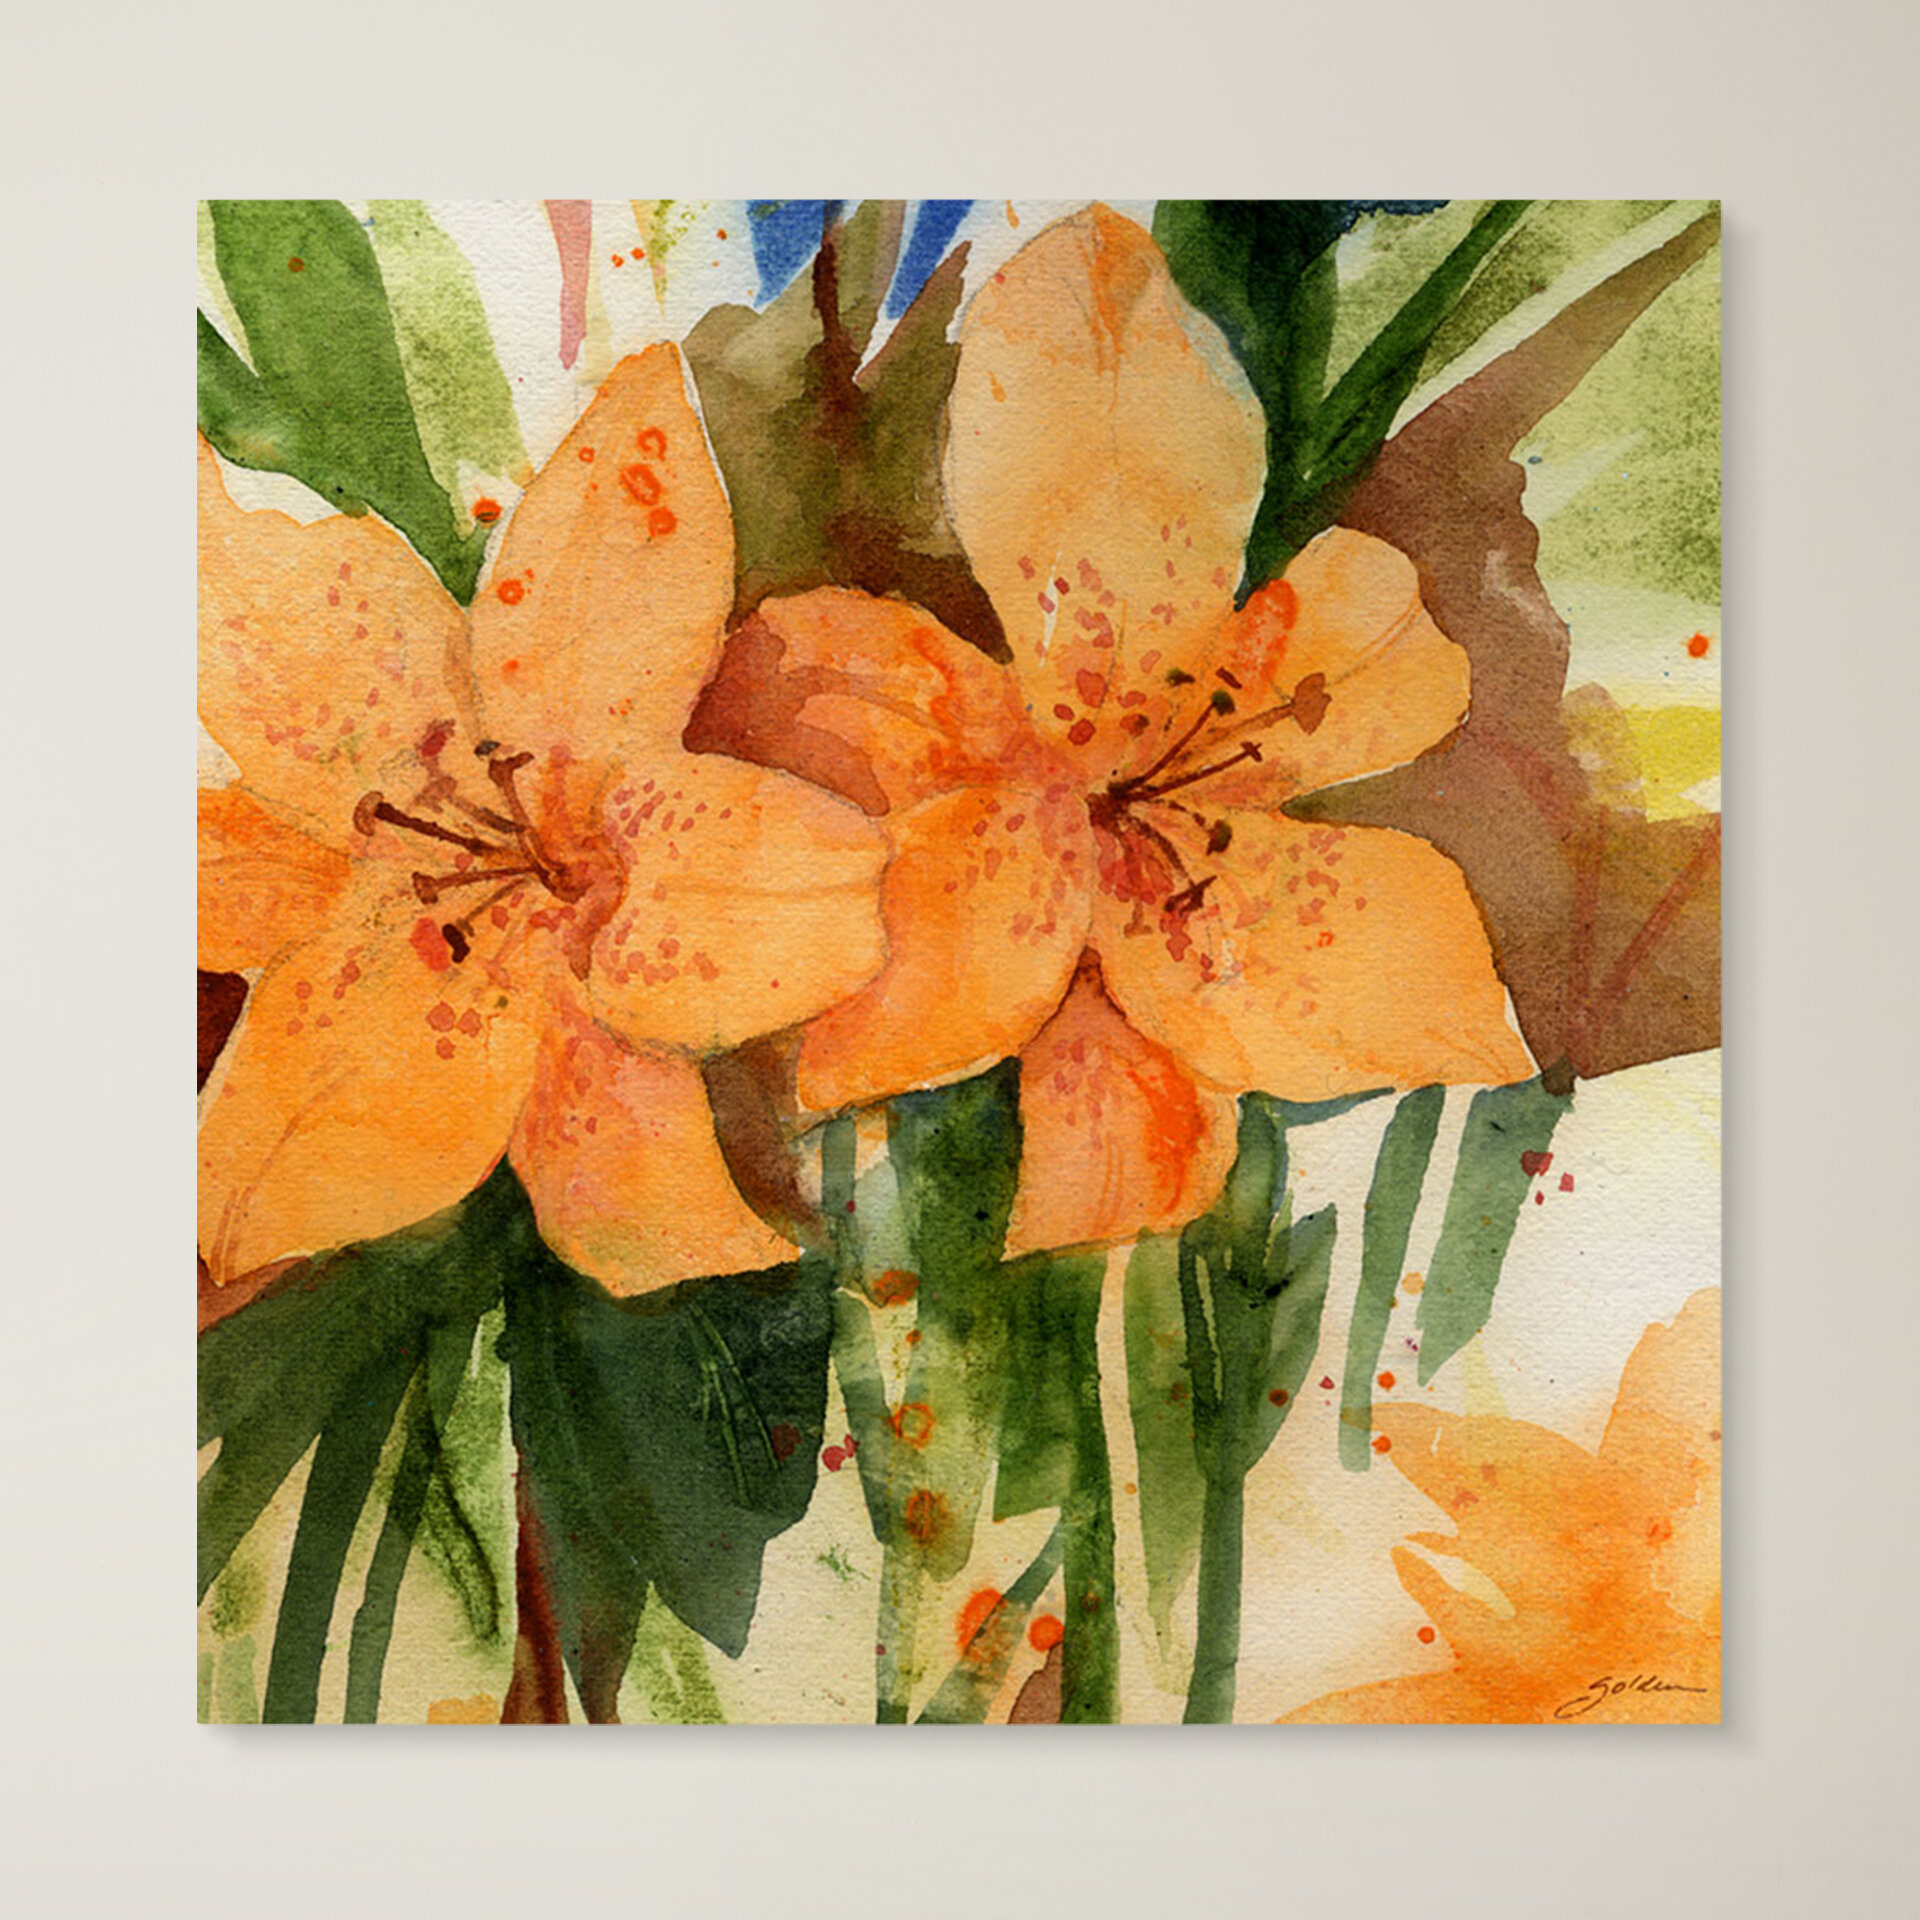 Trademark art tiger lilies painting print on canvas reviews trademark art tiger lilies painting print on canvas reviews wayfair izmirmasajfo